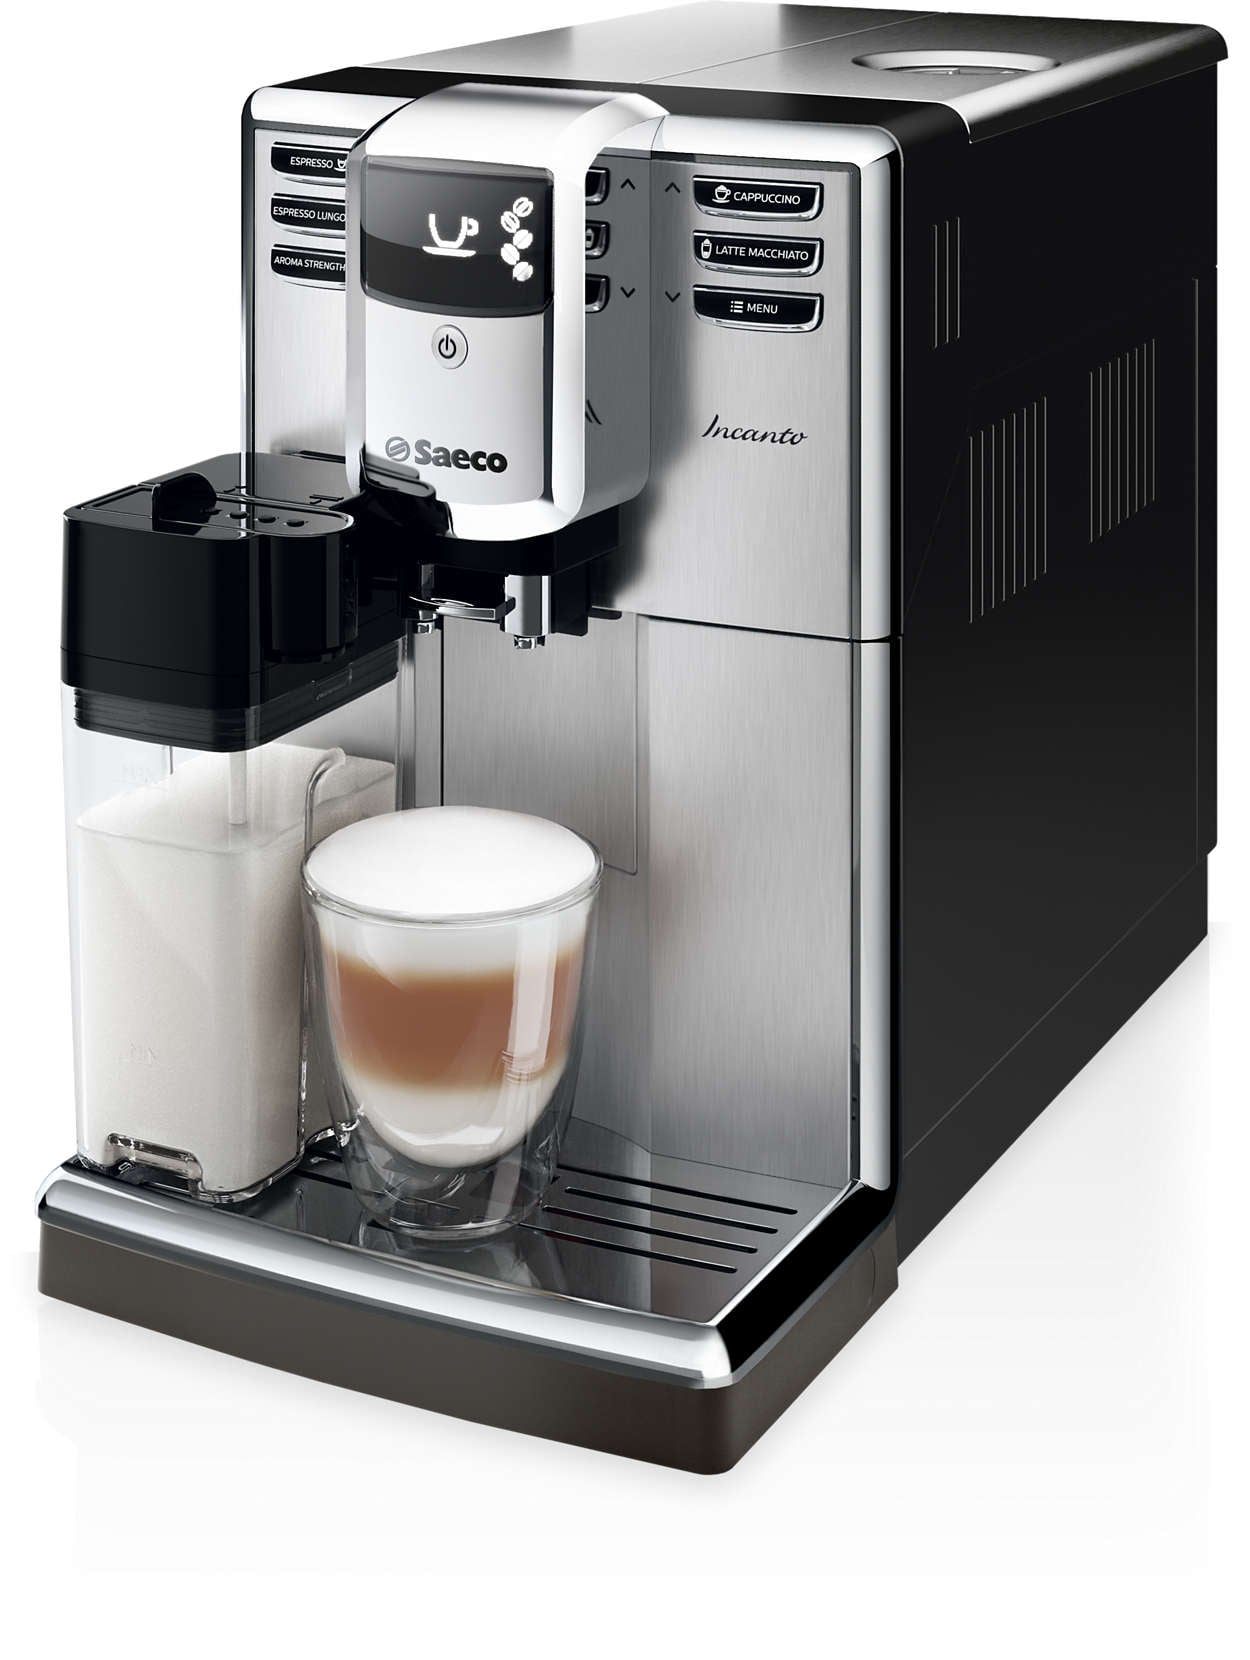 מכונת אספרסוSaeco Incanto Super-automatic espresso hd8917/01